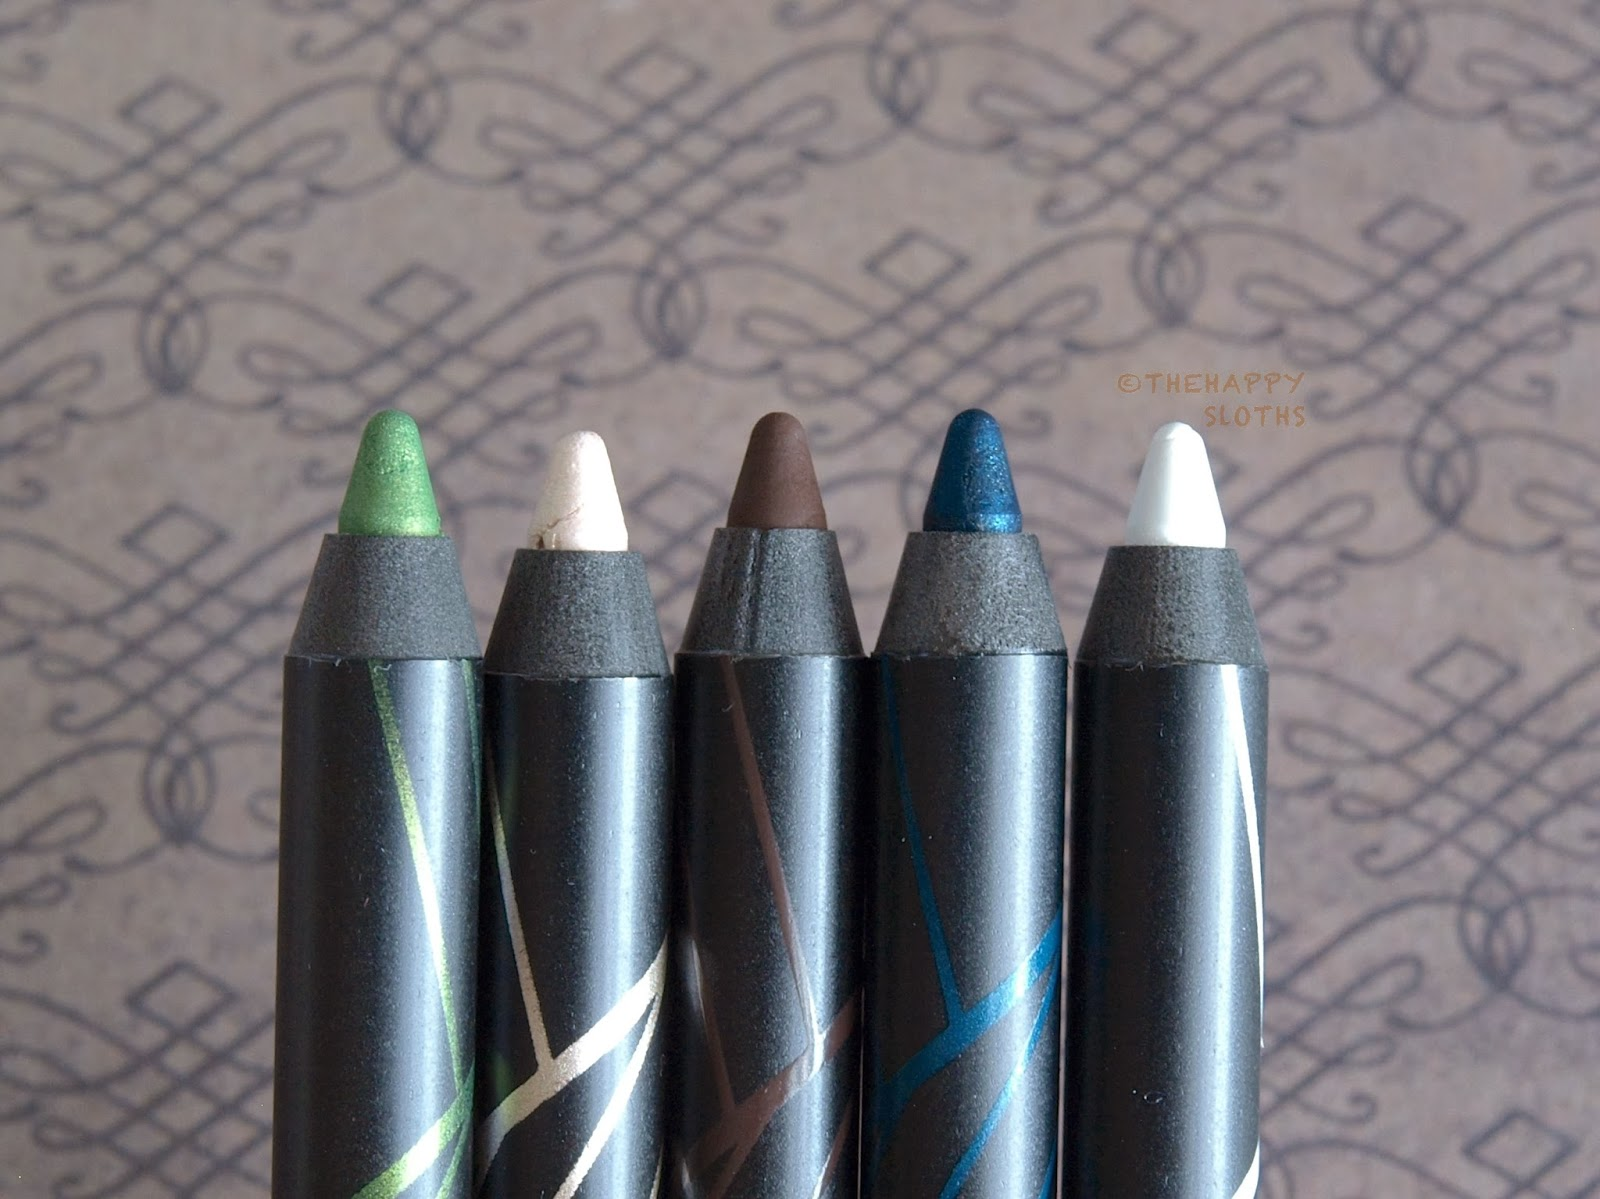 La Girl Line Art Matte Eyeliner Review : L a girl gel glide eyeliner pencils review and swatches the